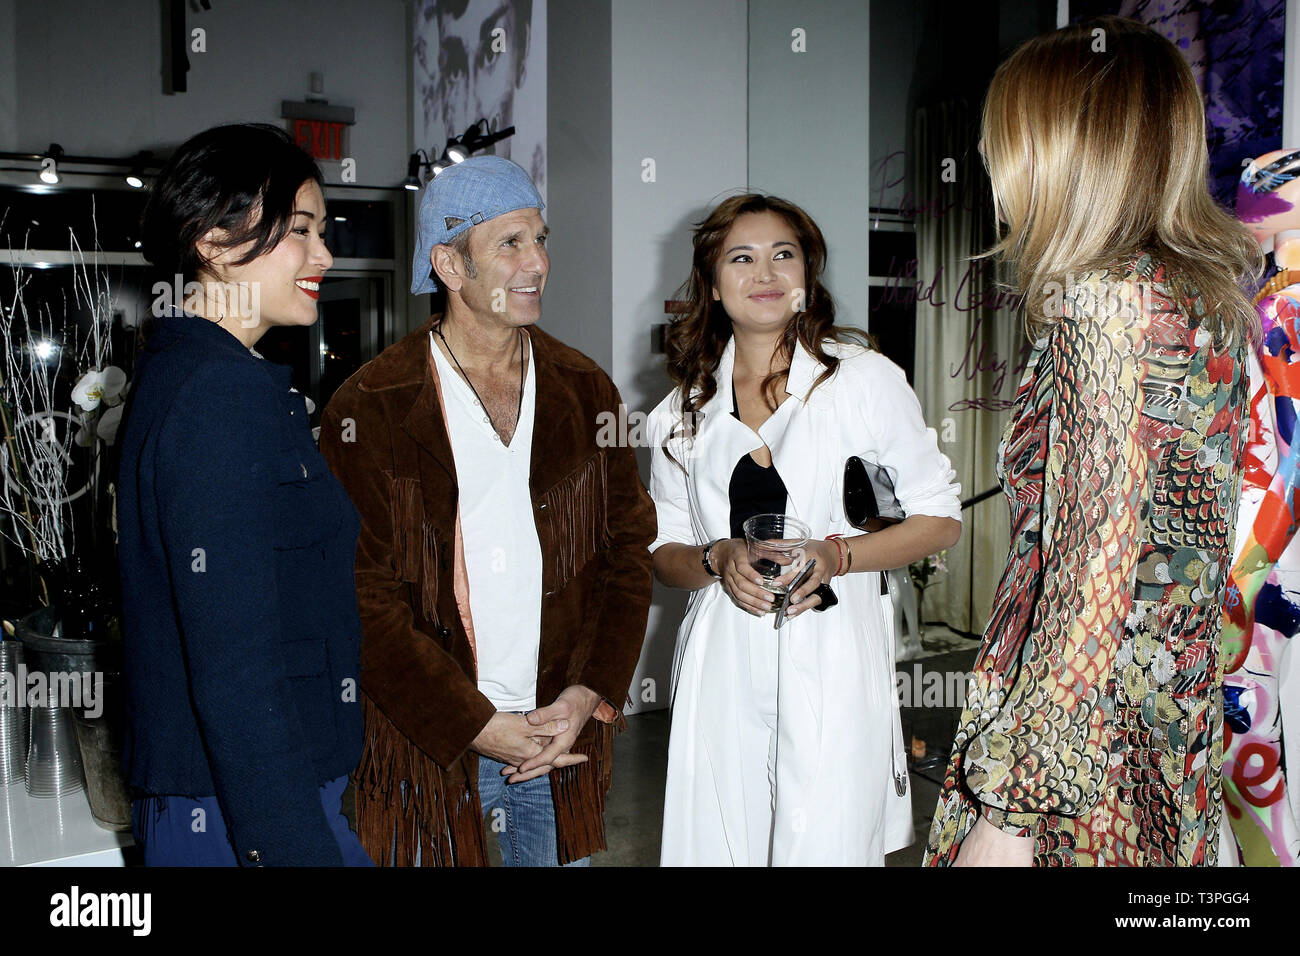 New York, USA. 21 May, 2015.  Kamilla Sun, Dr. Andrew Feldman, Art Dealer, Sasha Rales, and, Co-Creater of Space 16, Daniela Zahradnikova at The Opening Night Of 'Paul Gerben: Mind Game' Private Art Event at Space 16 on May 21, 2015 in New York, NY. Credit: Steve Mack/S.D. Mack Pictures/Alamy - Stock Image